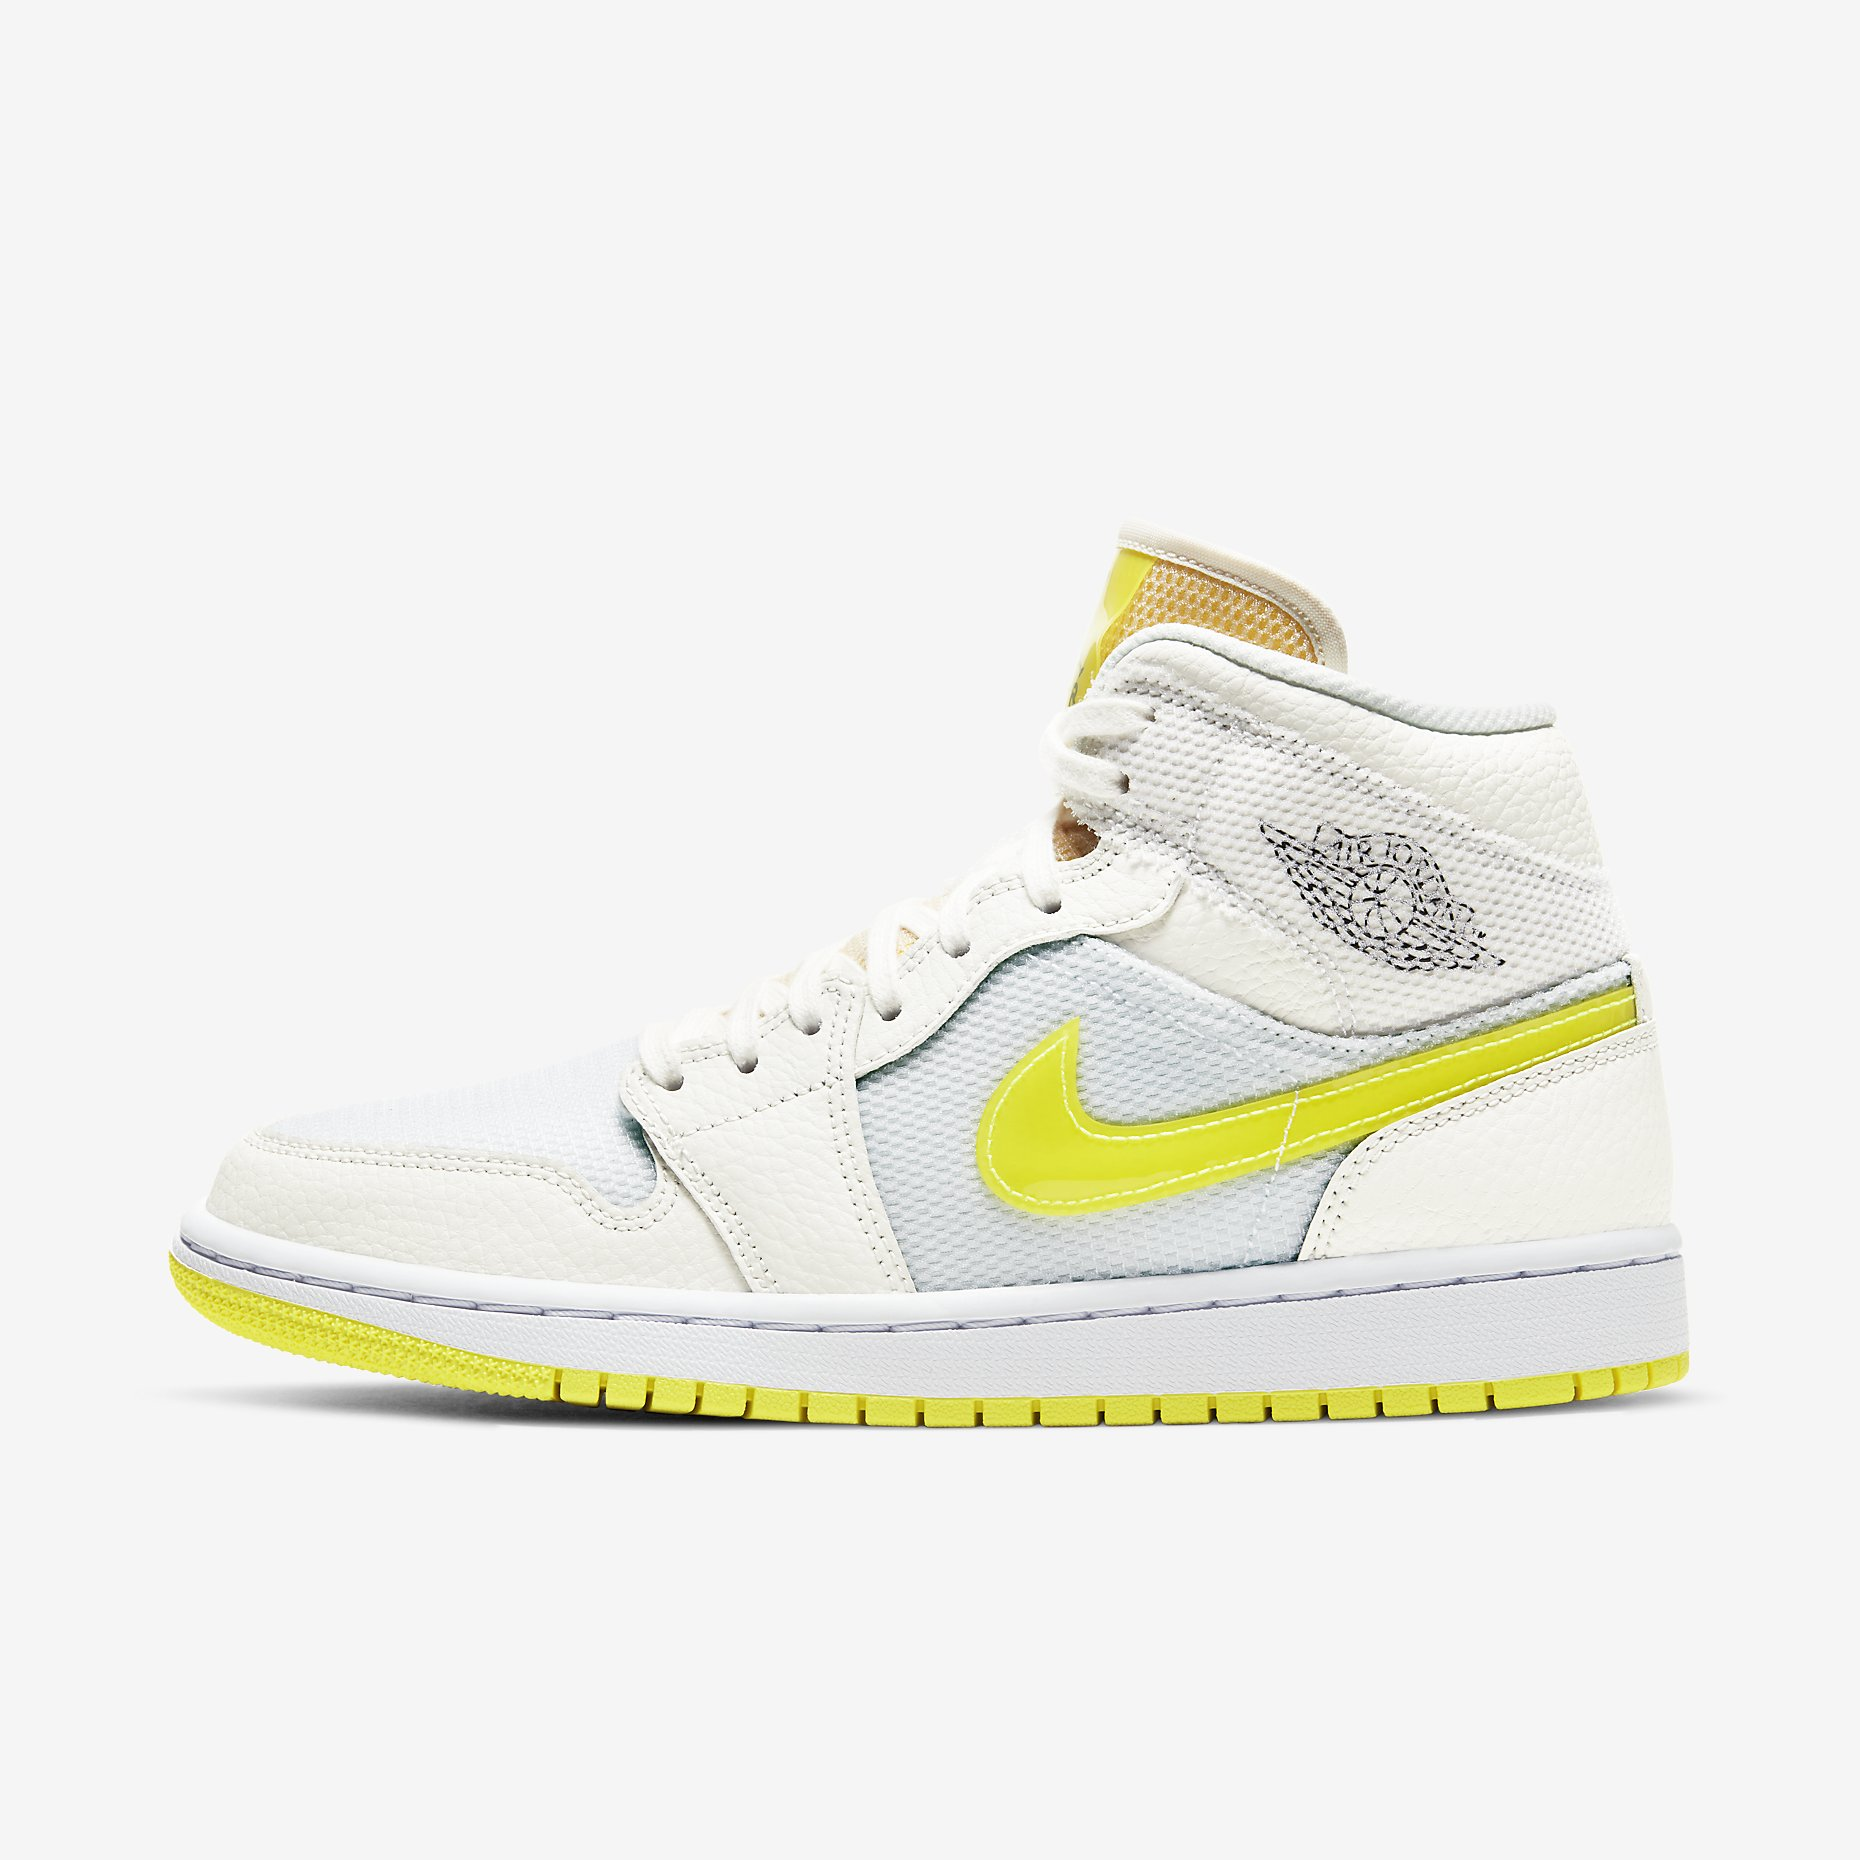 Women's Air Jordan 1 Mid SE 'Sail/Light Voltage Yellow'}